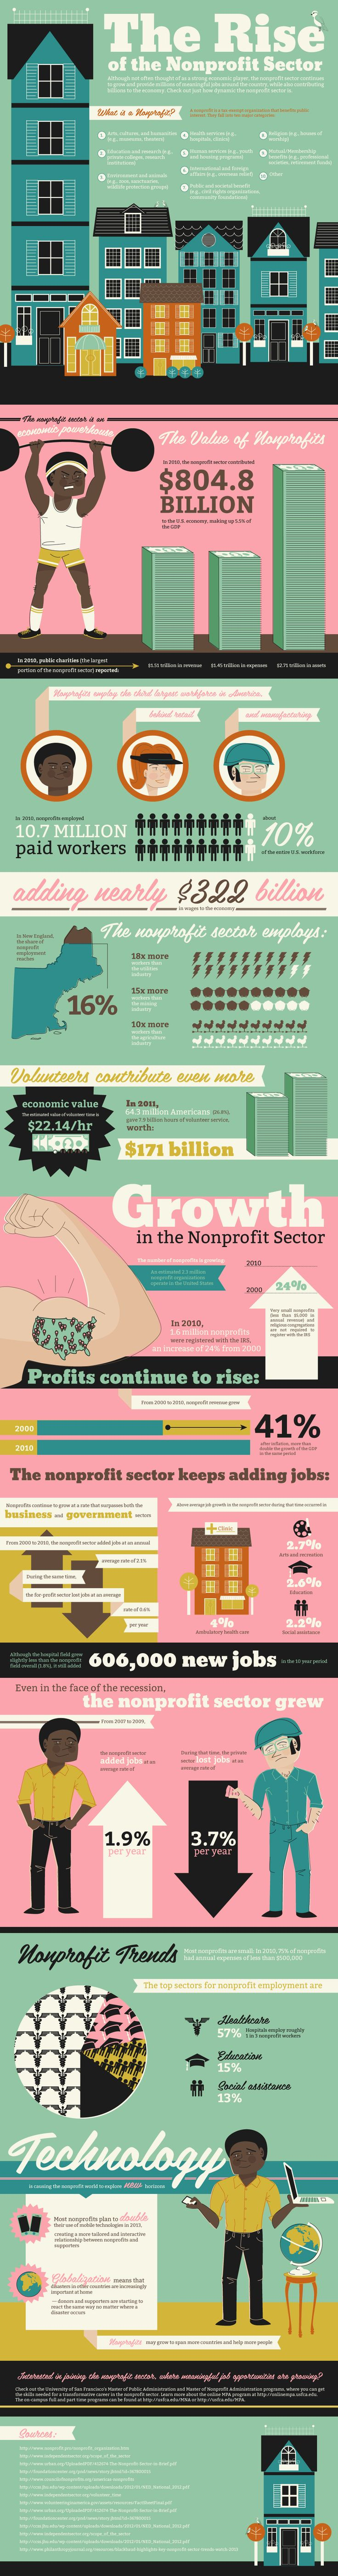 The Rise Of The Nonprofit Sector #Infographic #NonProfit